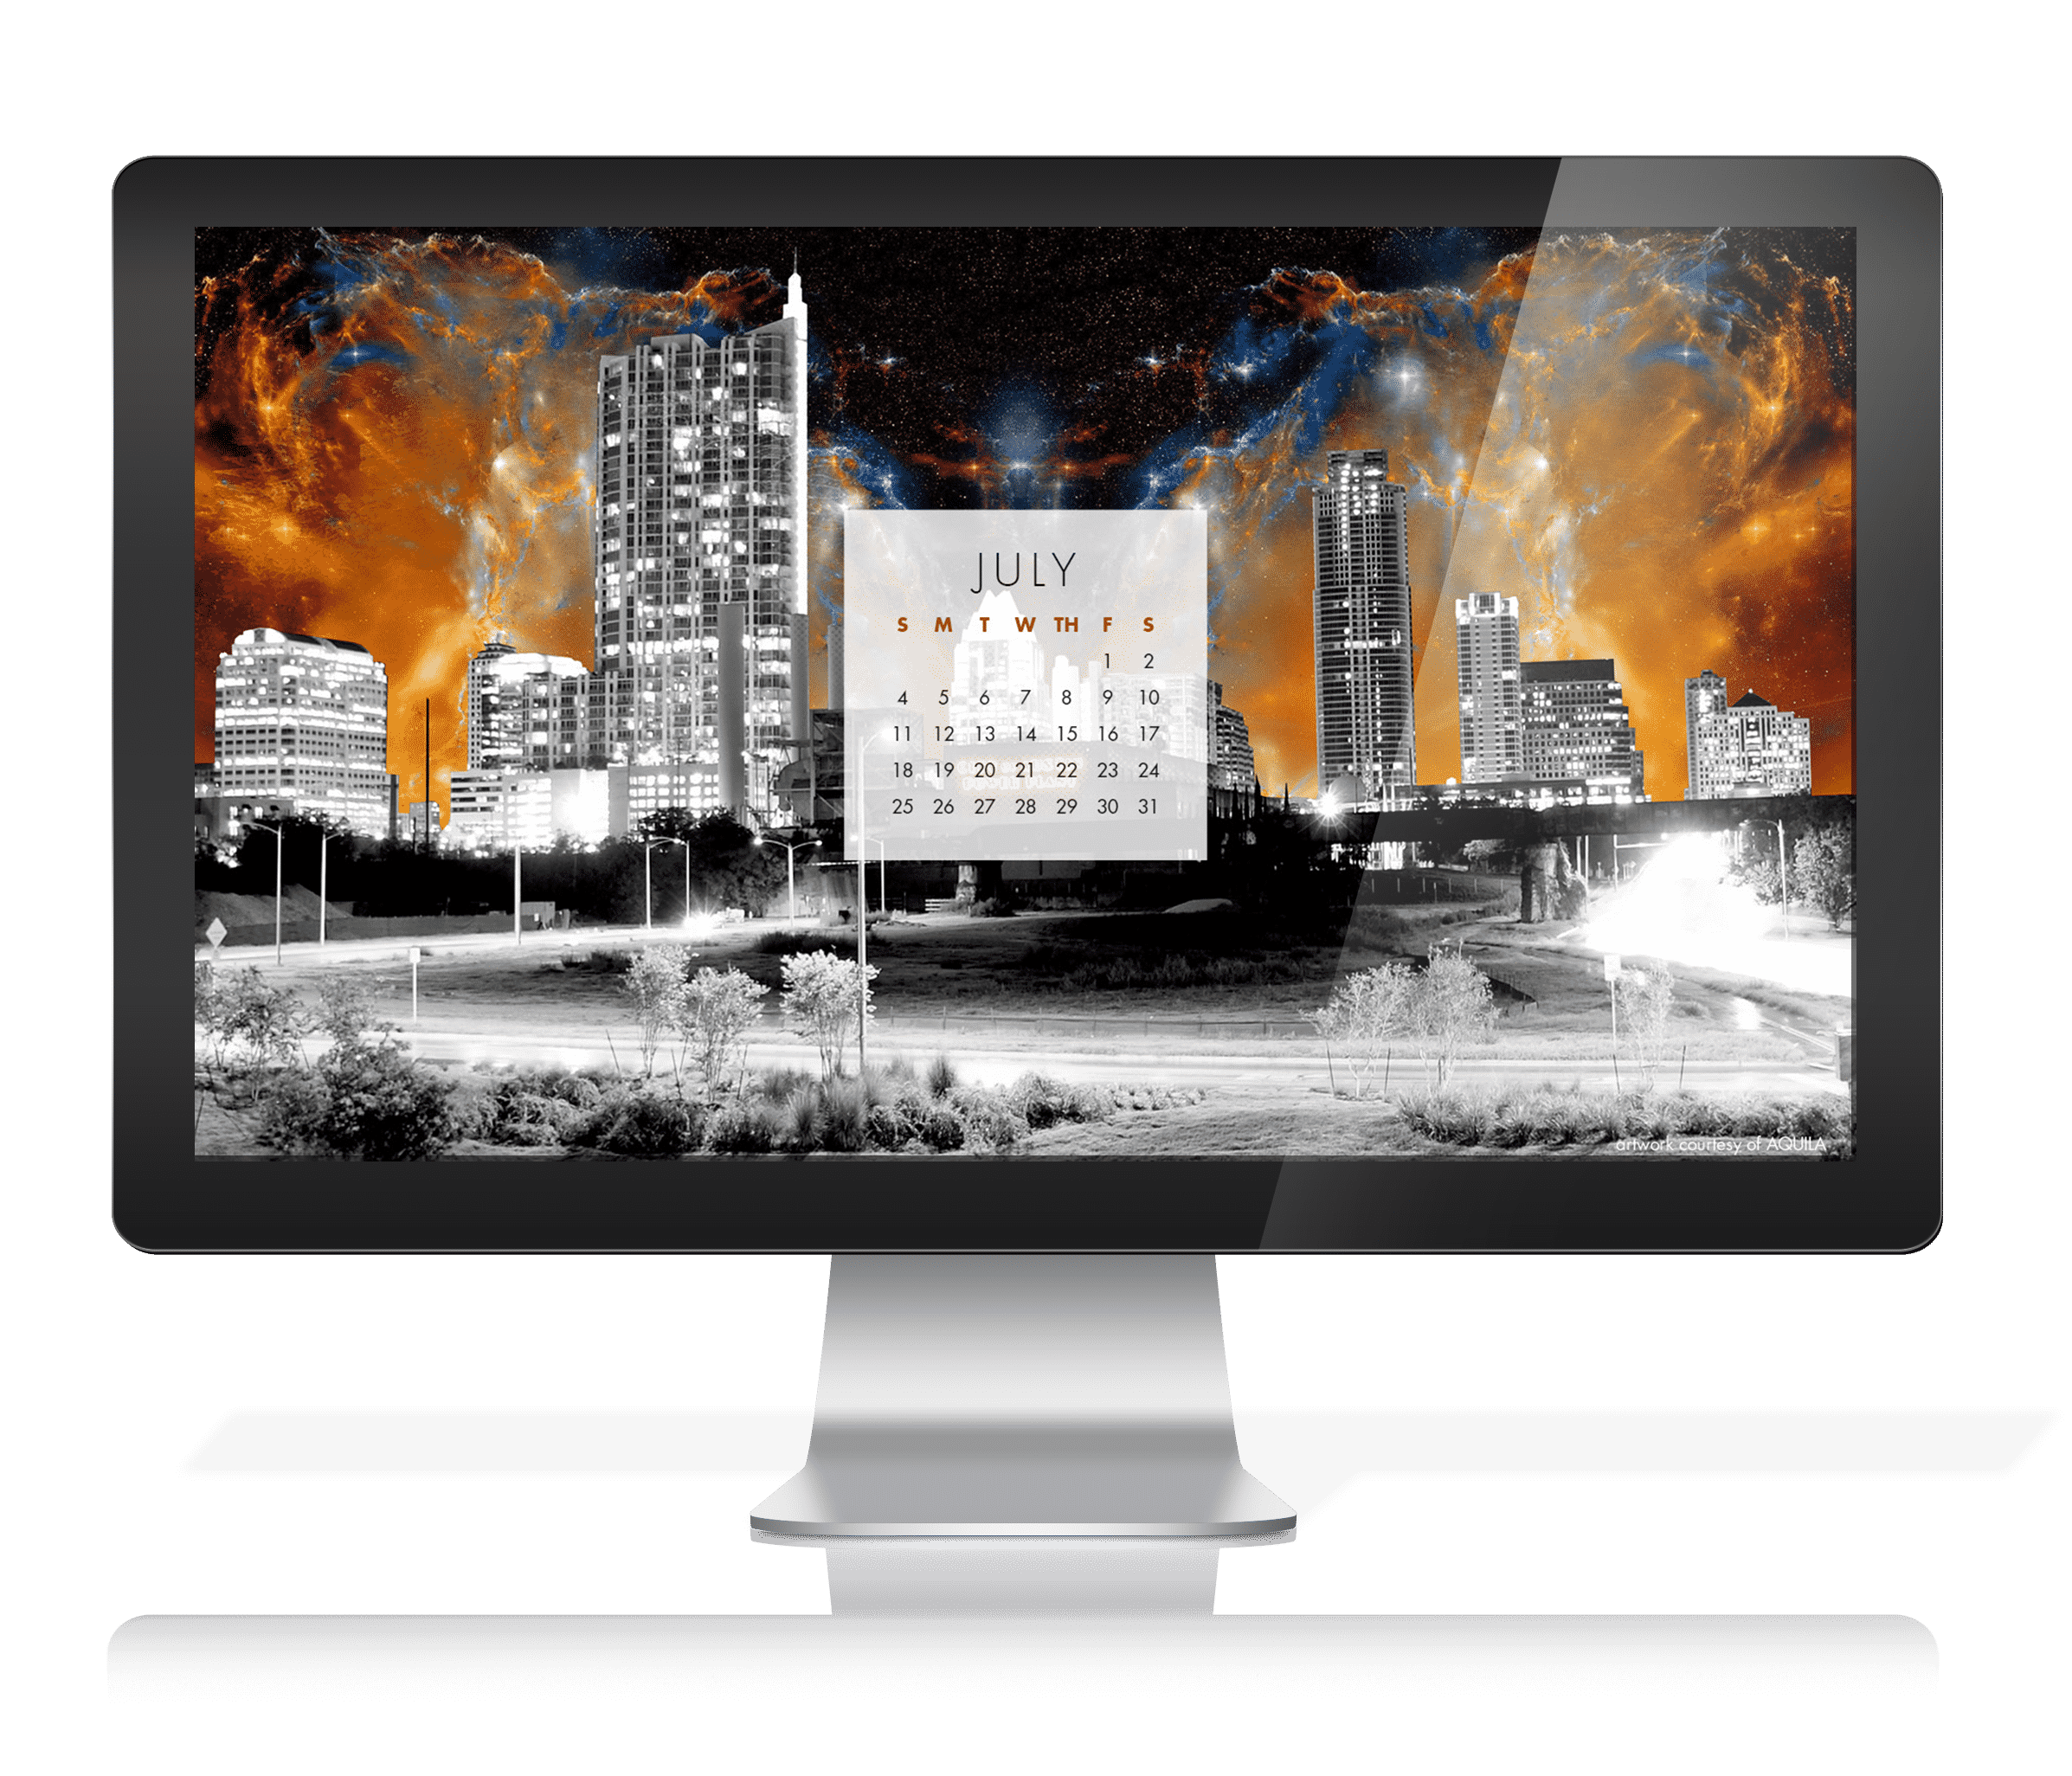 Desktop Background with Calendar - Free Download - Jake Bryer - Austin Night Sky